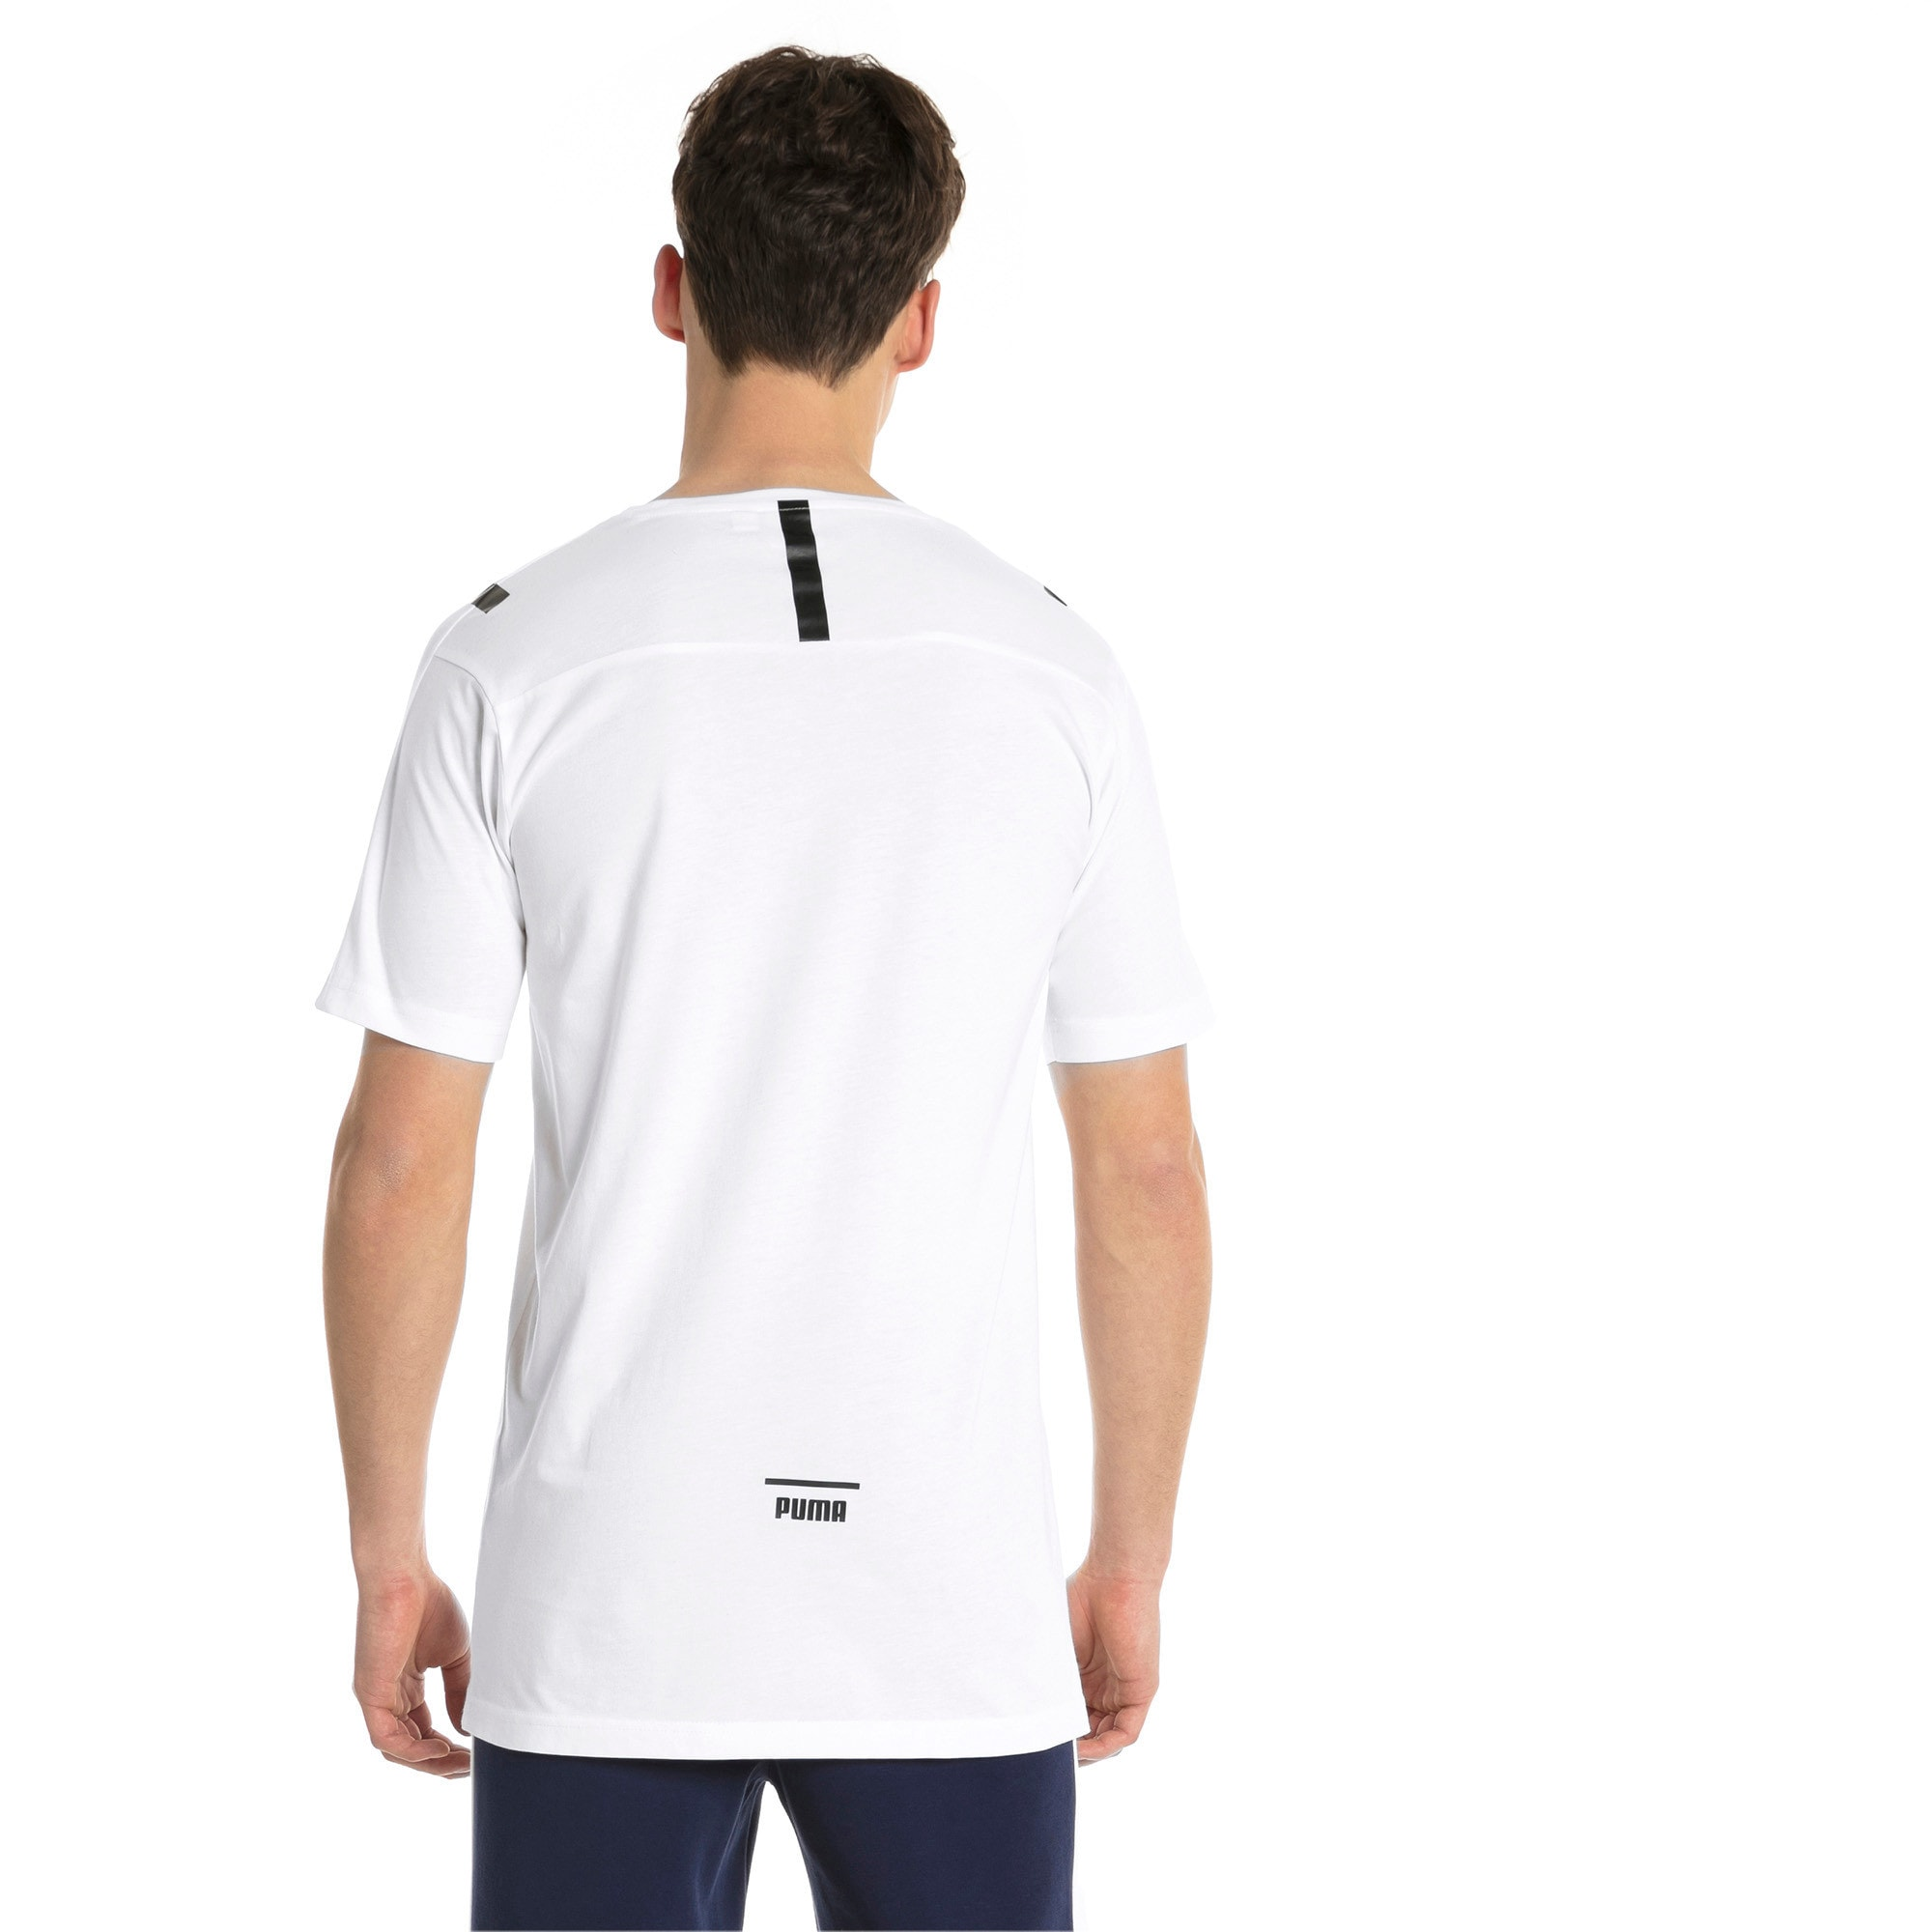 Thumbnail 3 of Pace Men's Tee, Puma White, medium-IND